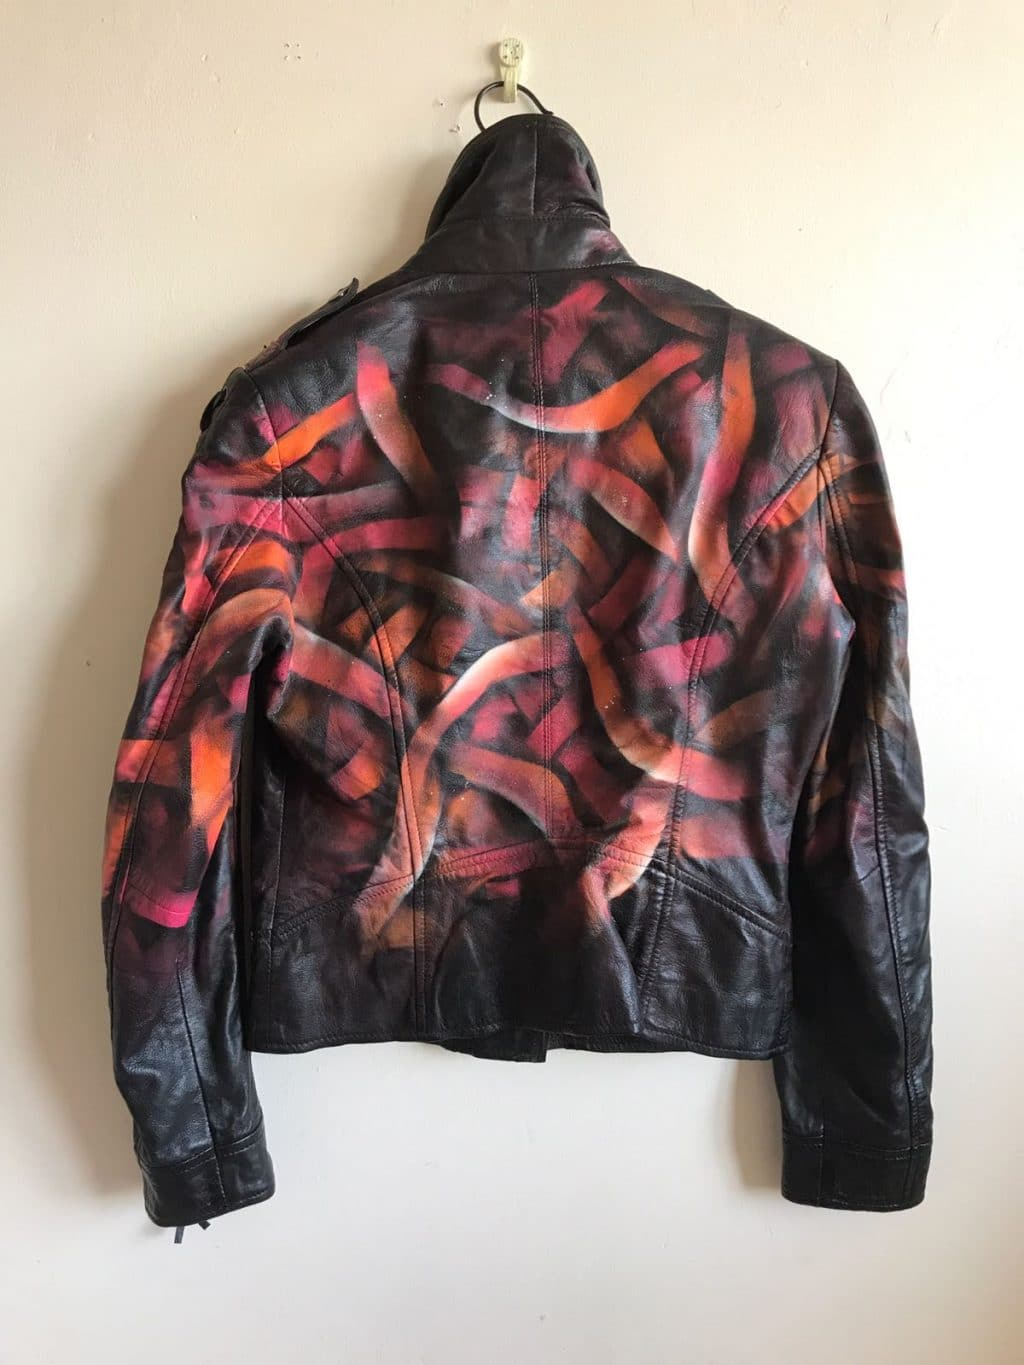 Otto Schade Galaxo Girl Spray Painted Leather Jacket Otto